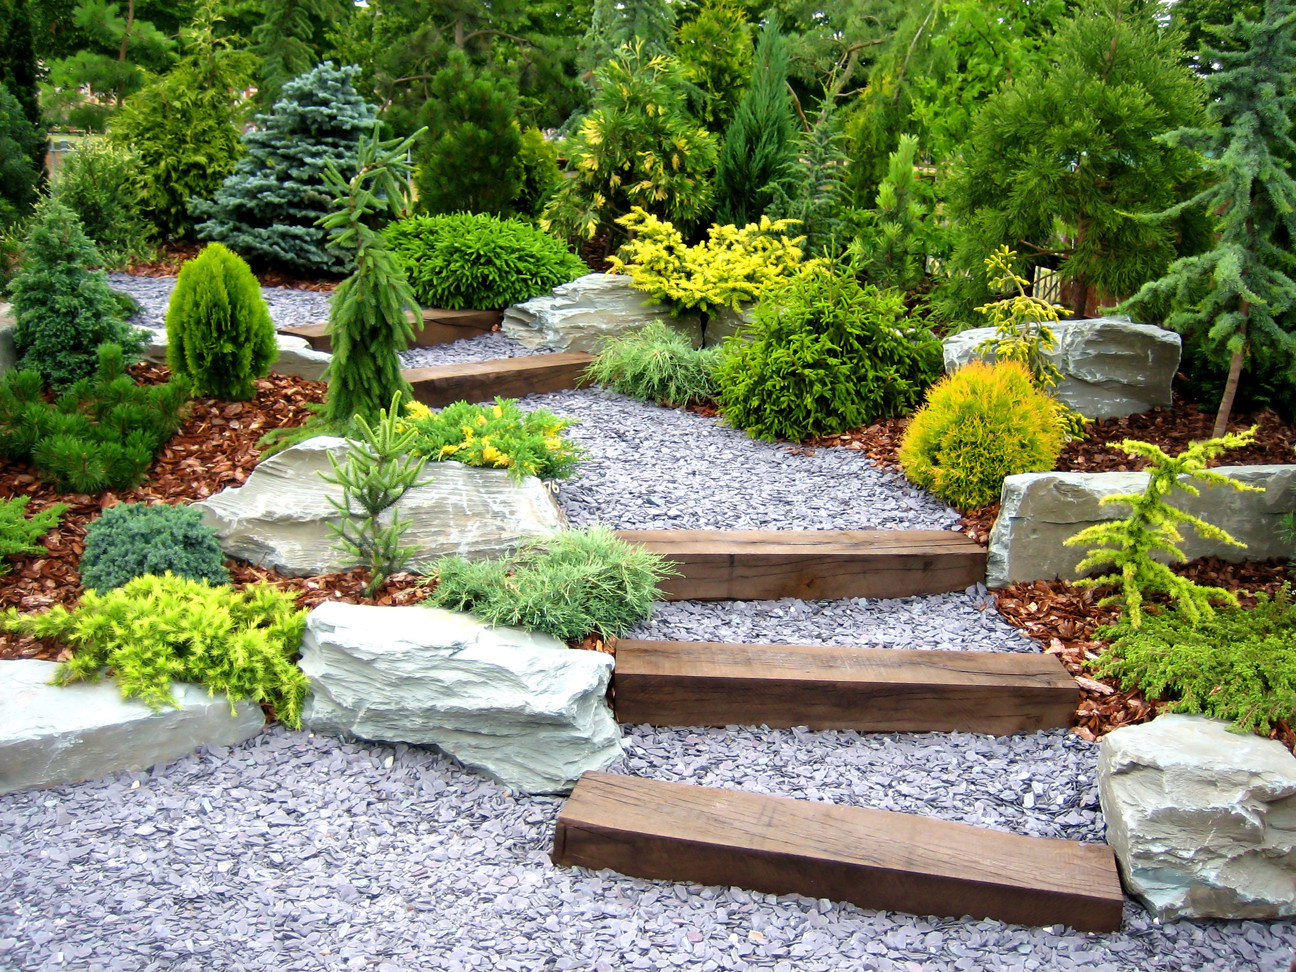 Cool Landscape Design - Garden Works throughout Landscape Design Garden